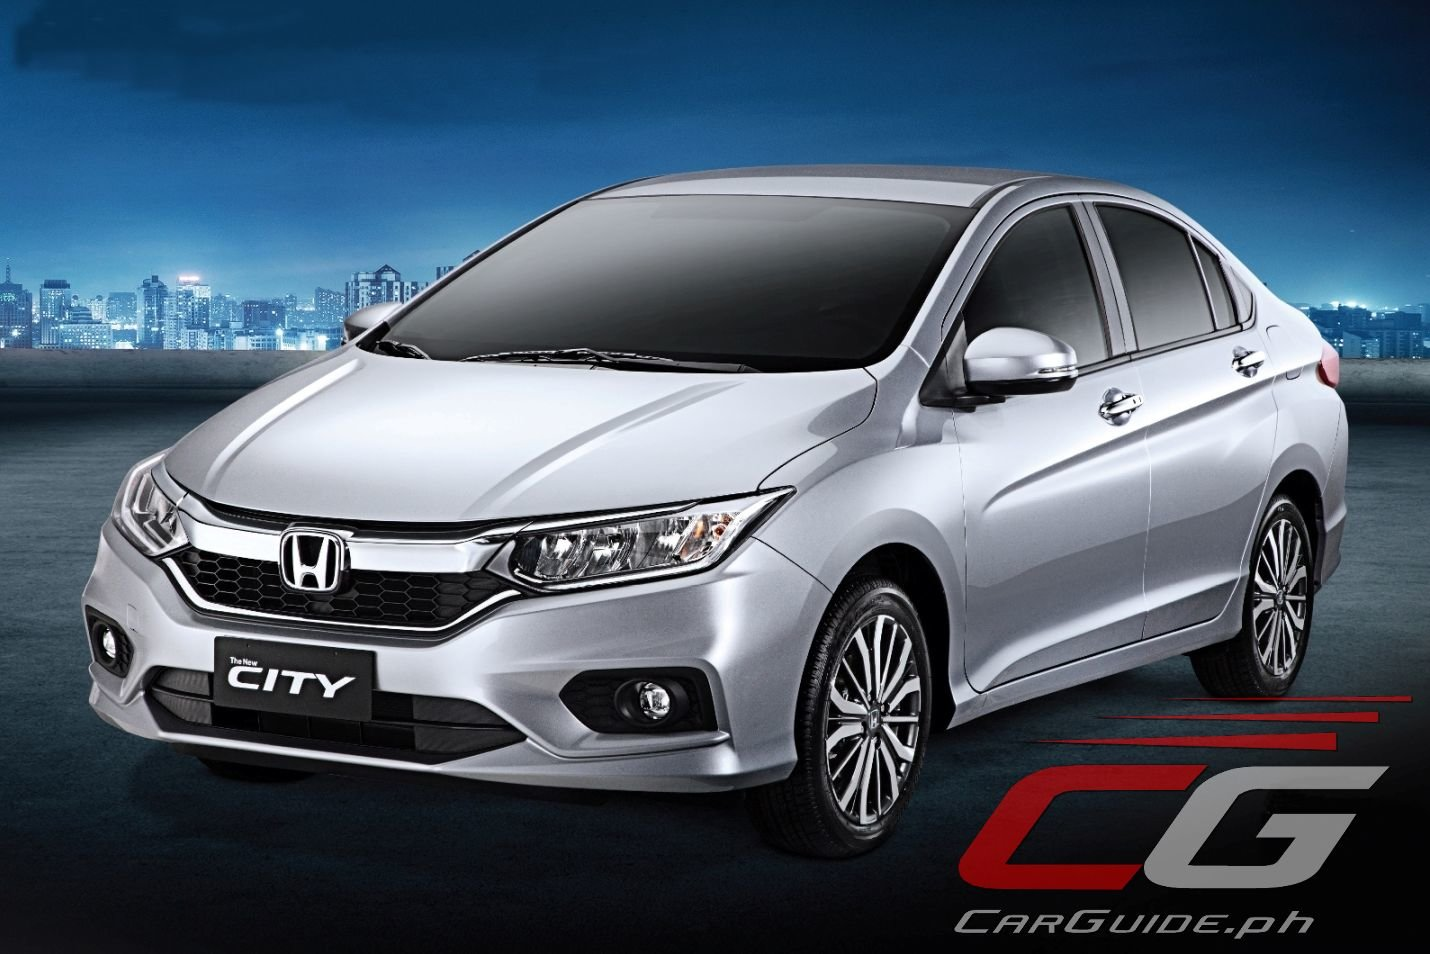 Latest Honda Refreshes City For 2017 The Smartest Choice W Free Download